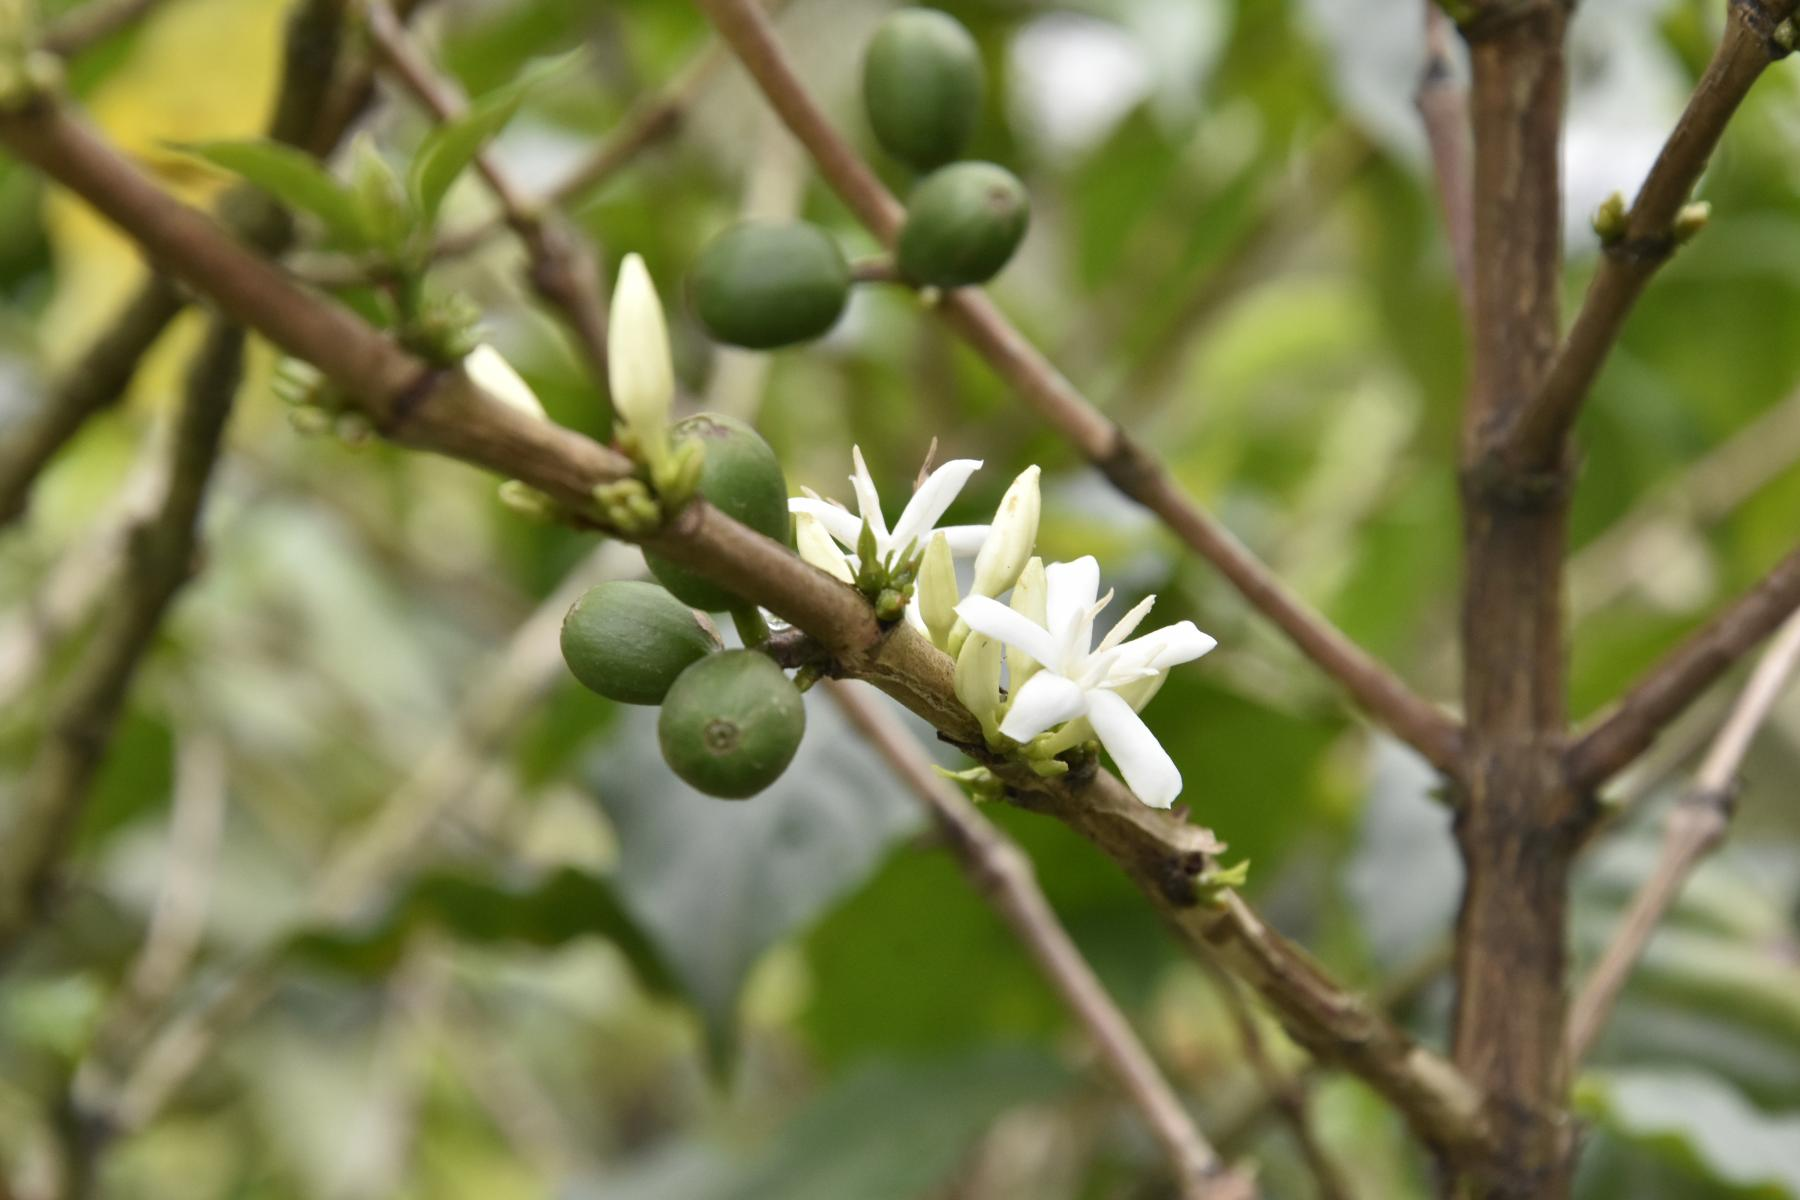 Green coffee beans and white coffee flowers are seen close-up on the stem of a plant.